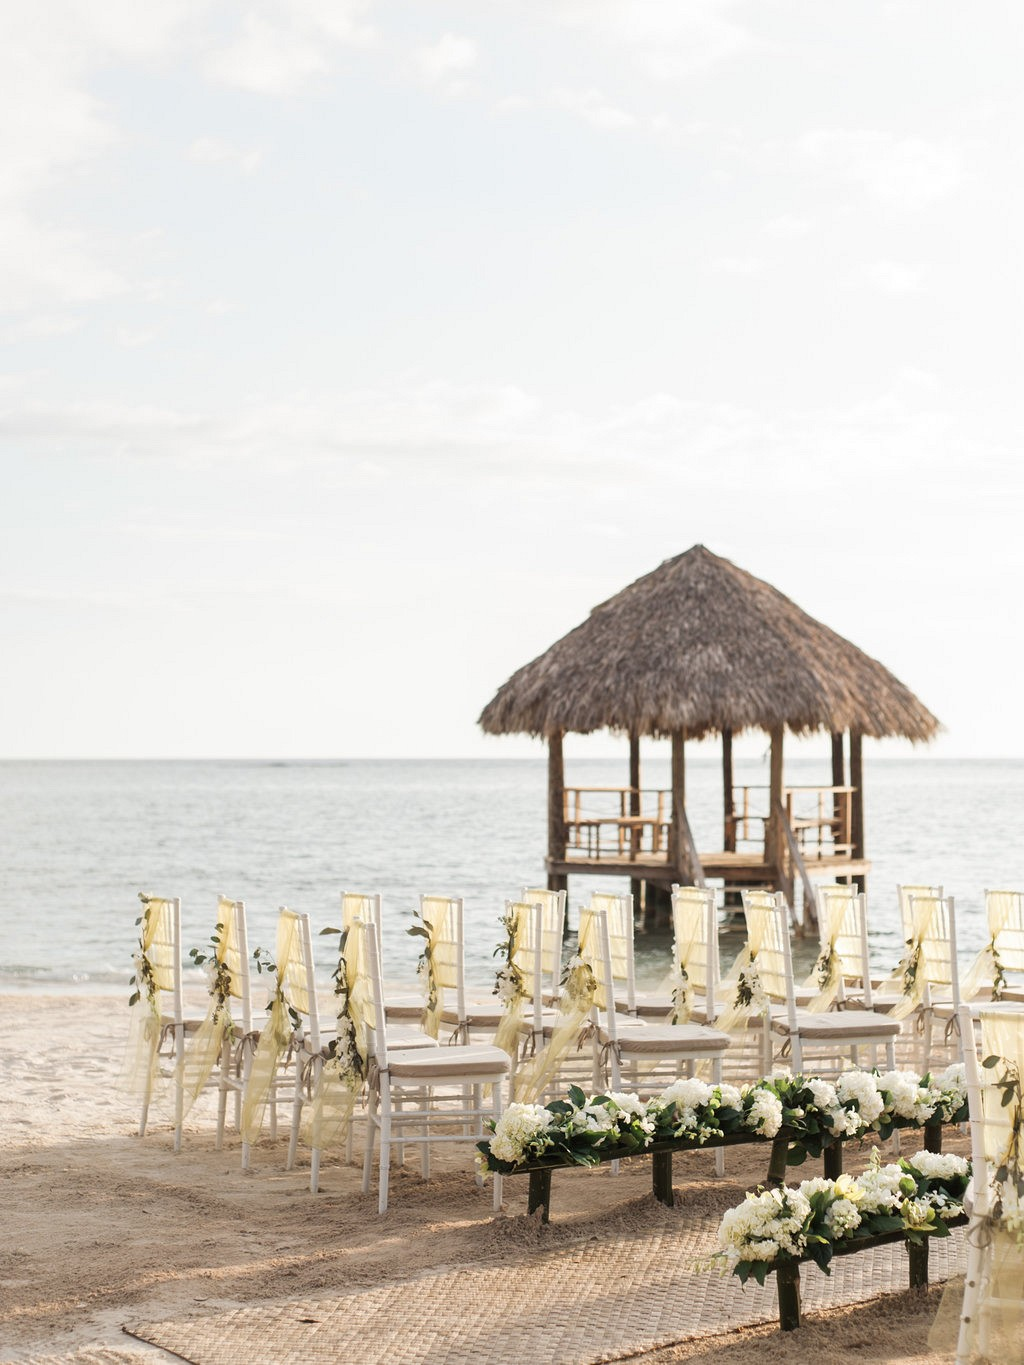 Getting married in Jamaica with Sandals Resorts